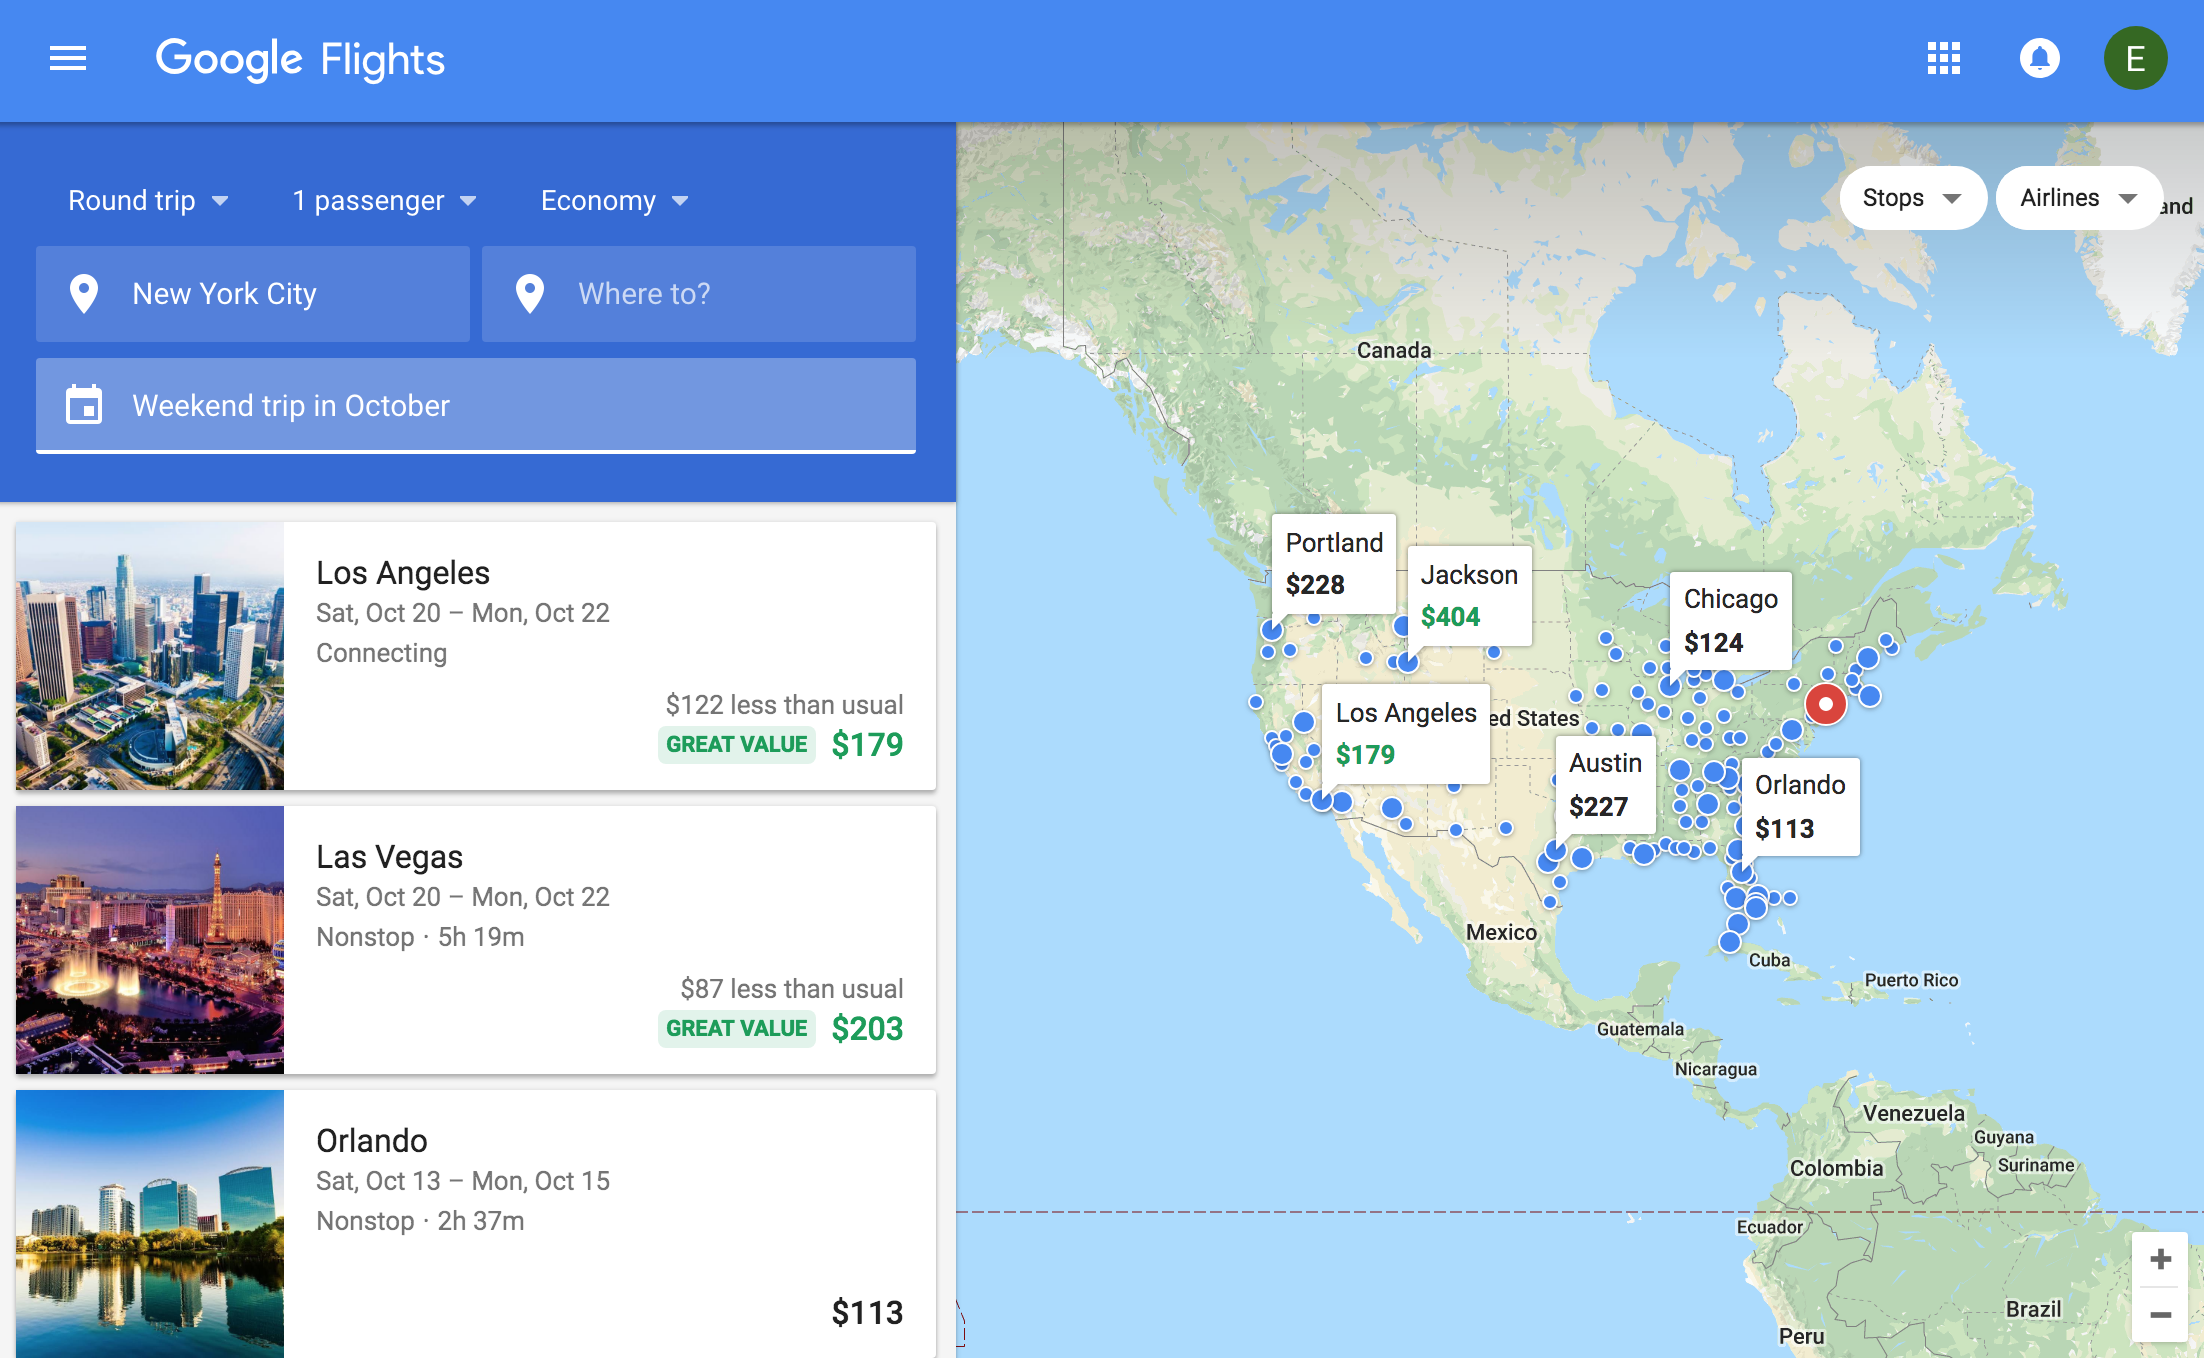 Google Flights Introduces 2 New Features to Help You Find the Cheapest Fares for Holiday Travel